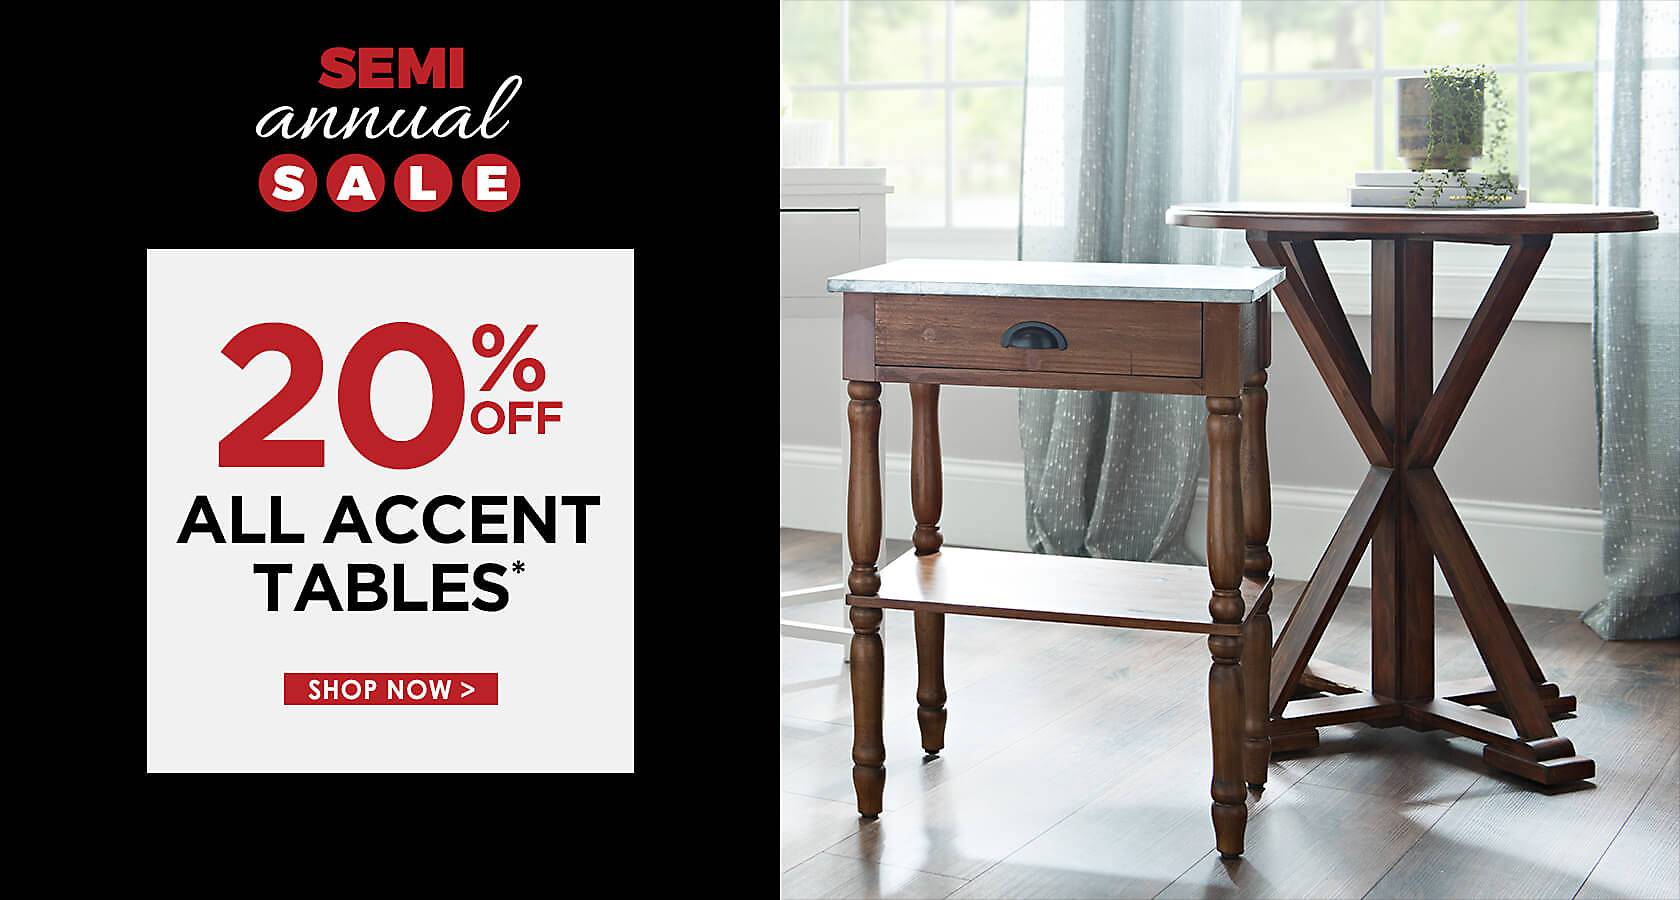 20% Off All Accent Tables - Some exclusions apply online - Shop Now